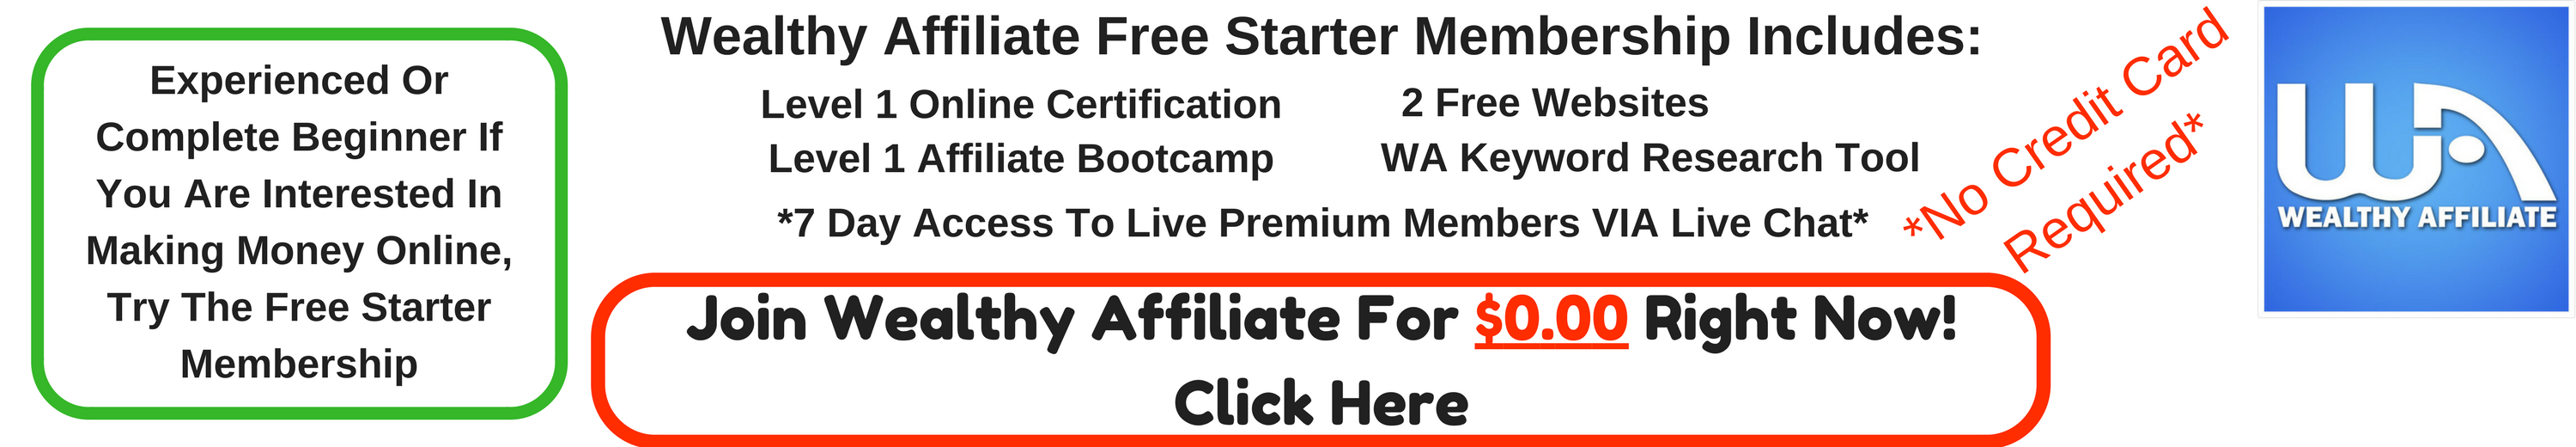 Wealthy Affiliate Free Membership Includes: